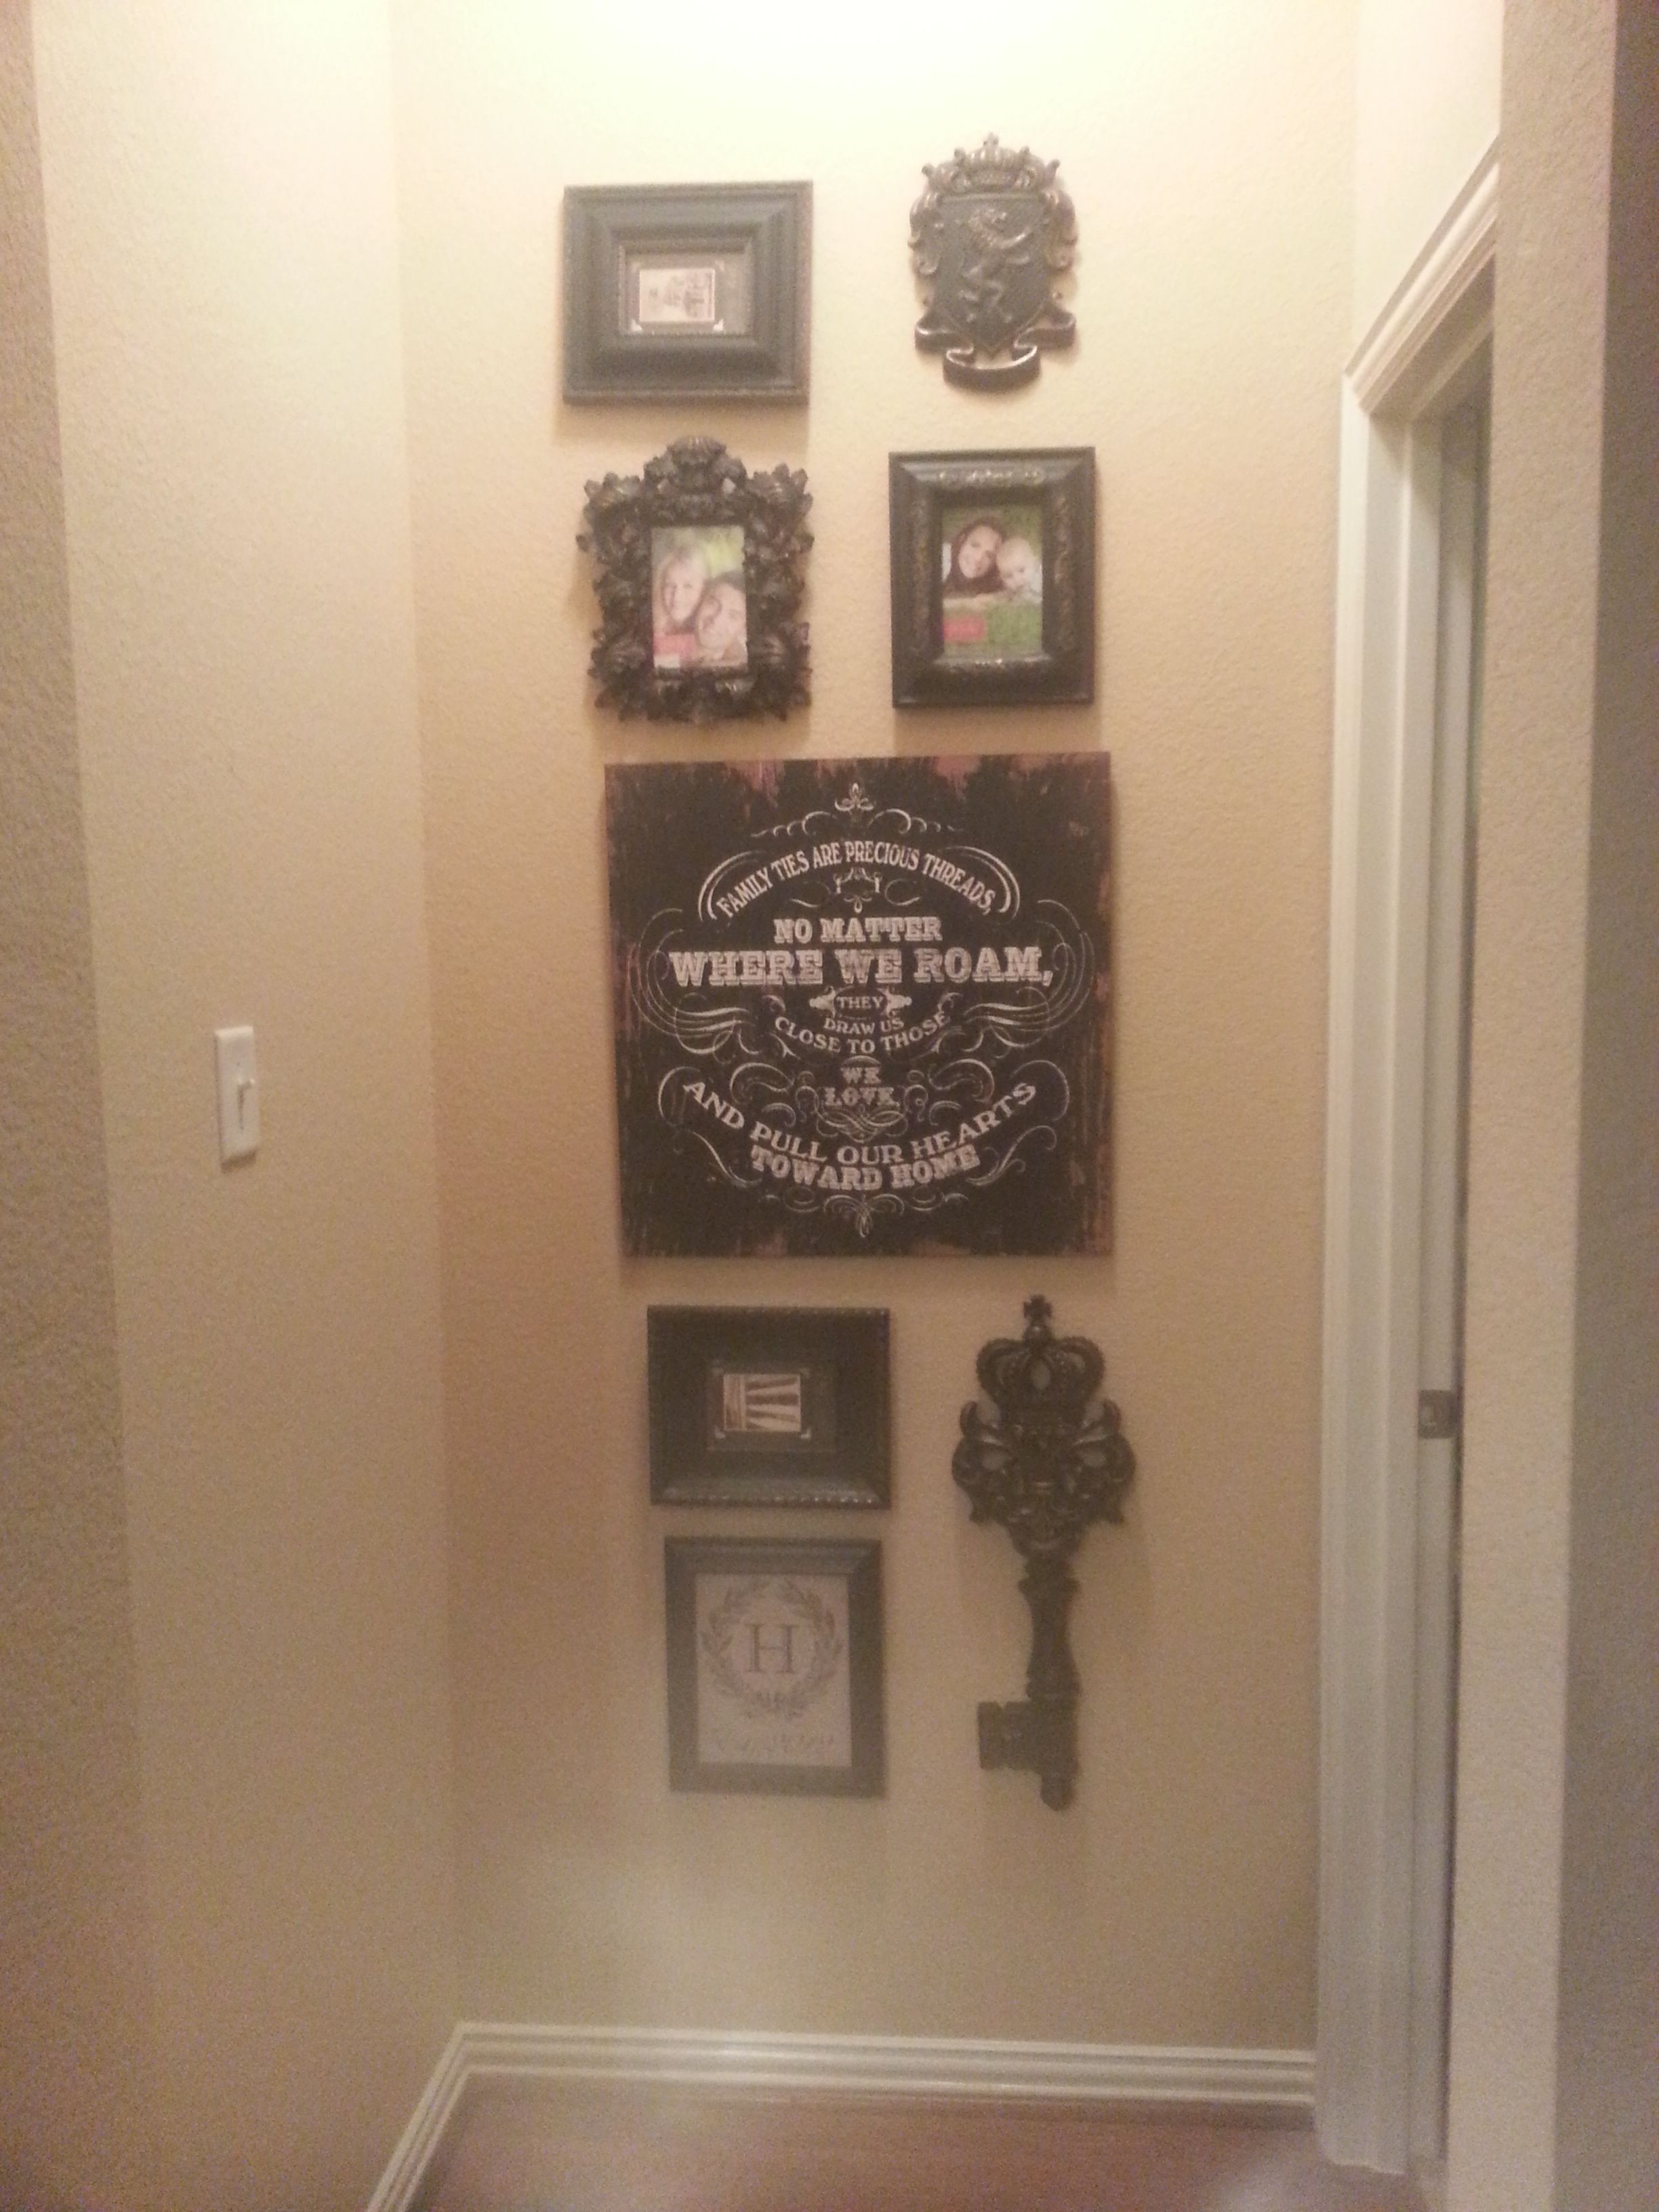 End of hallway ideas  narrow wall decor for end of hallway or nook in awkward spaces in